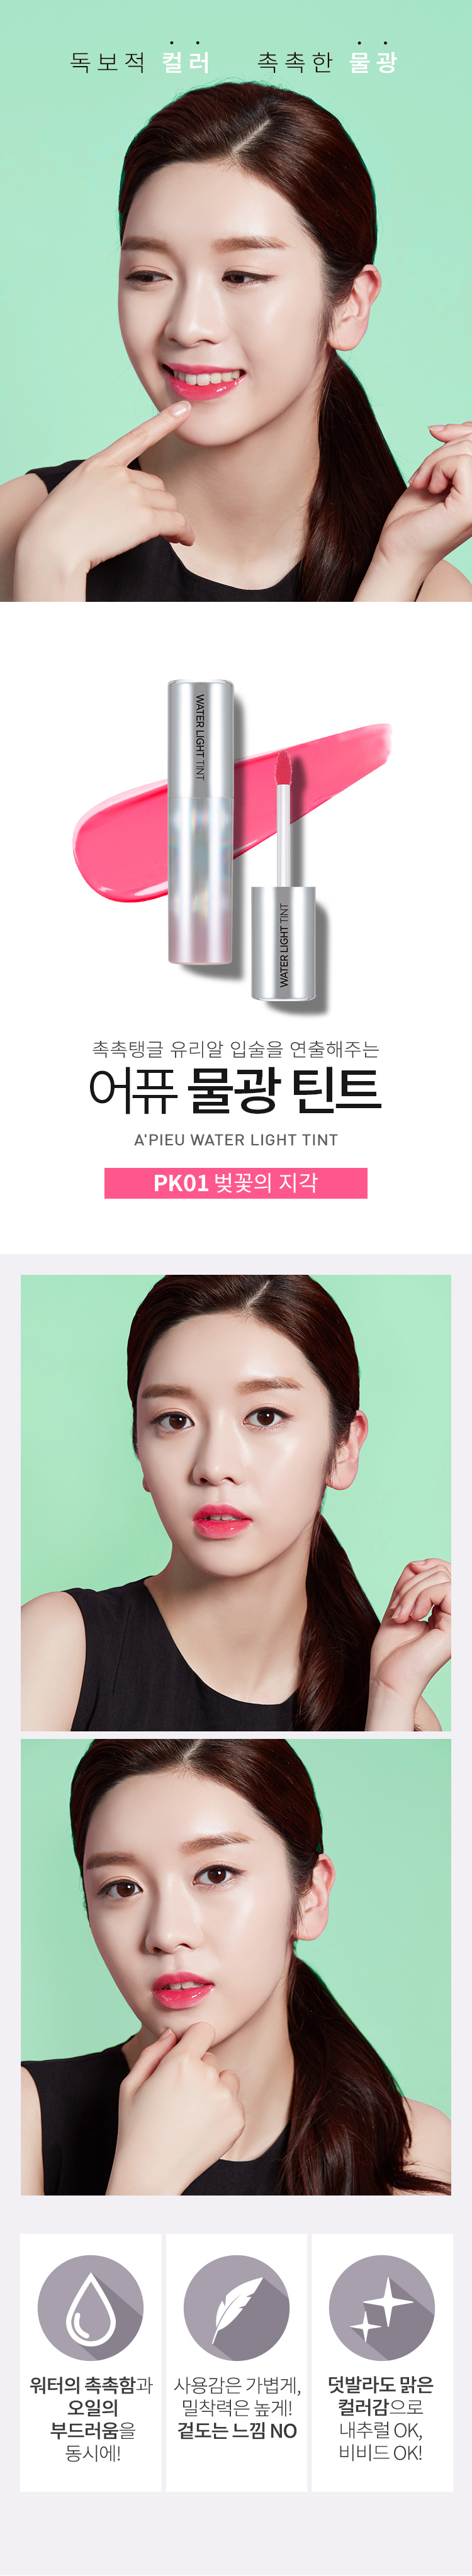 APIEU_Water_Light_Tint_PK01_01.jpg